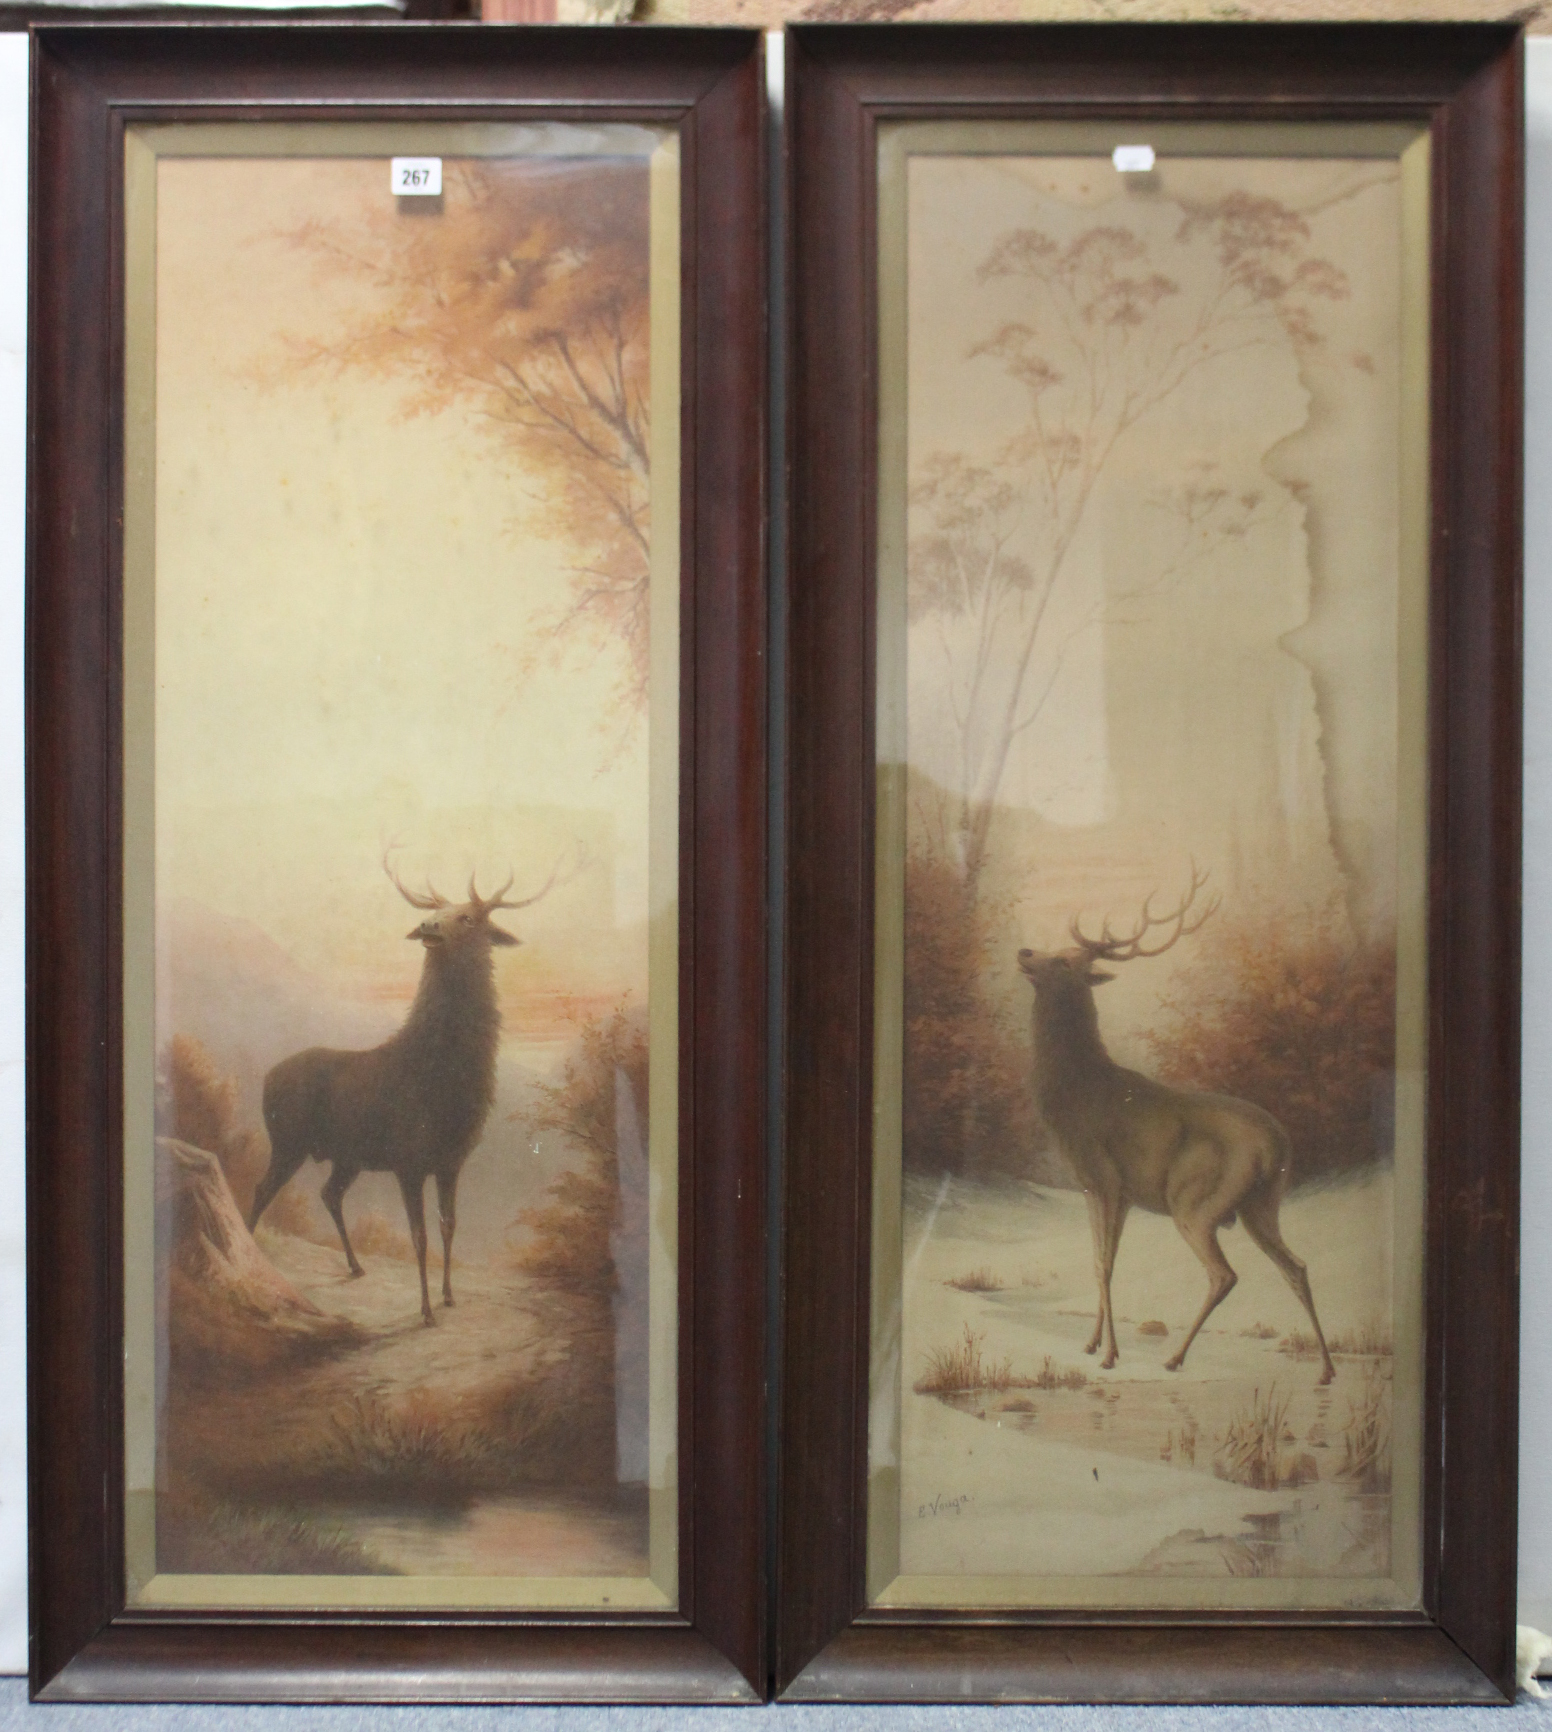 "Lot 267 - A pair of coloured prints of stags after E.Vouga, 35¾"" x 12¼"" in matching glazed mahogany frames."